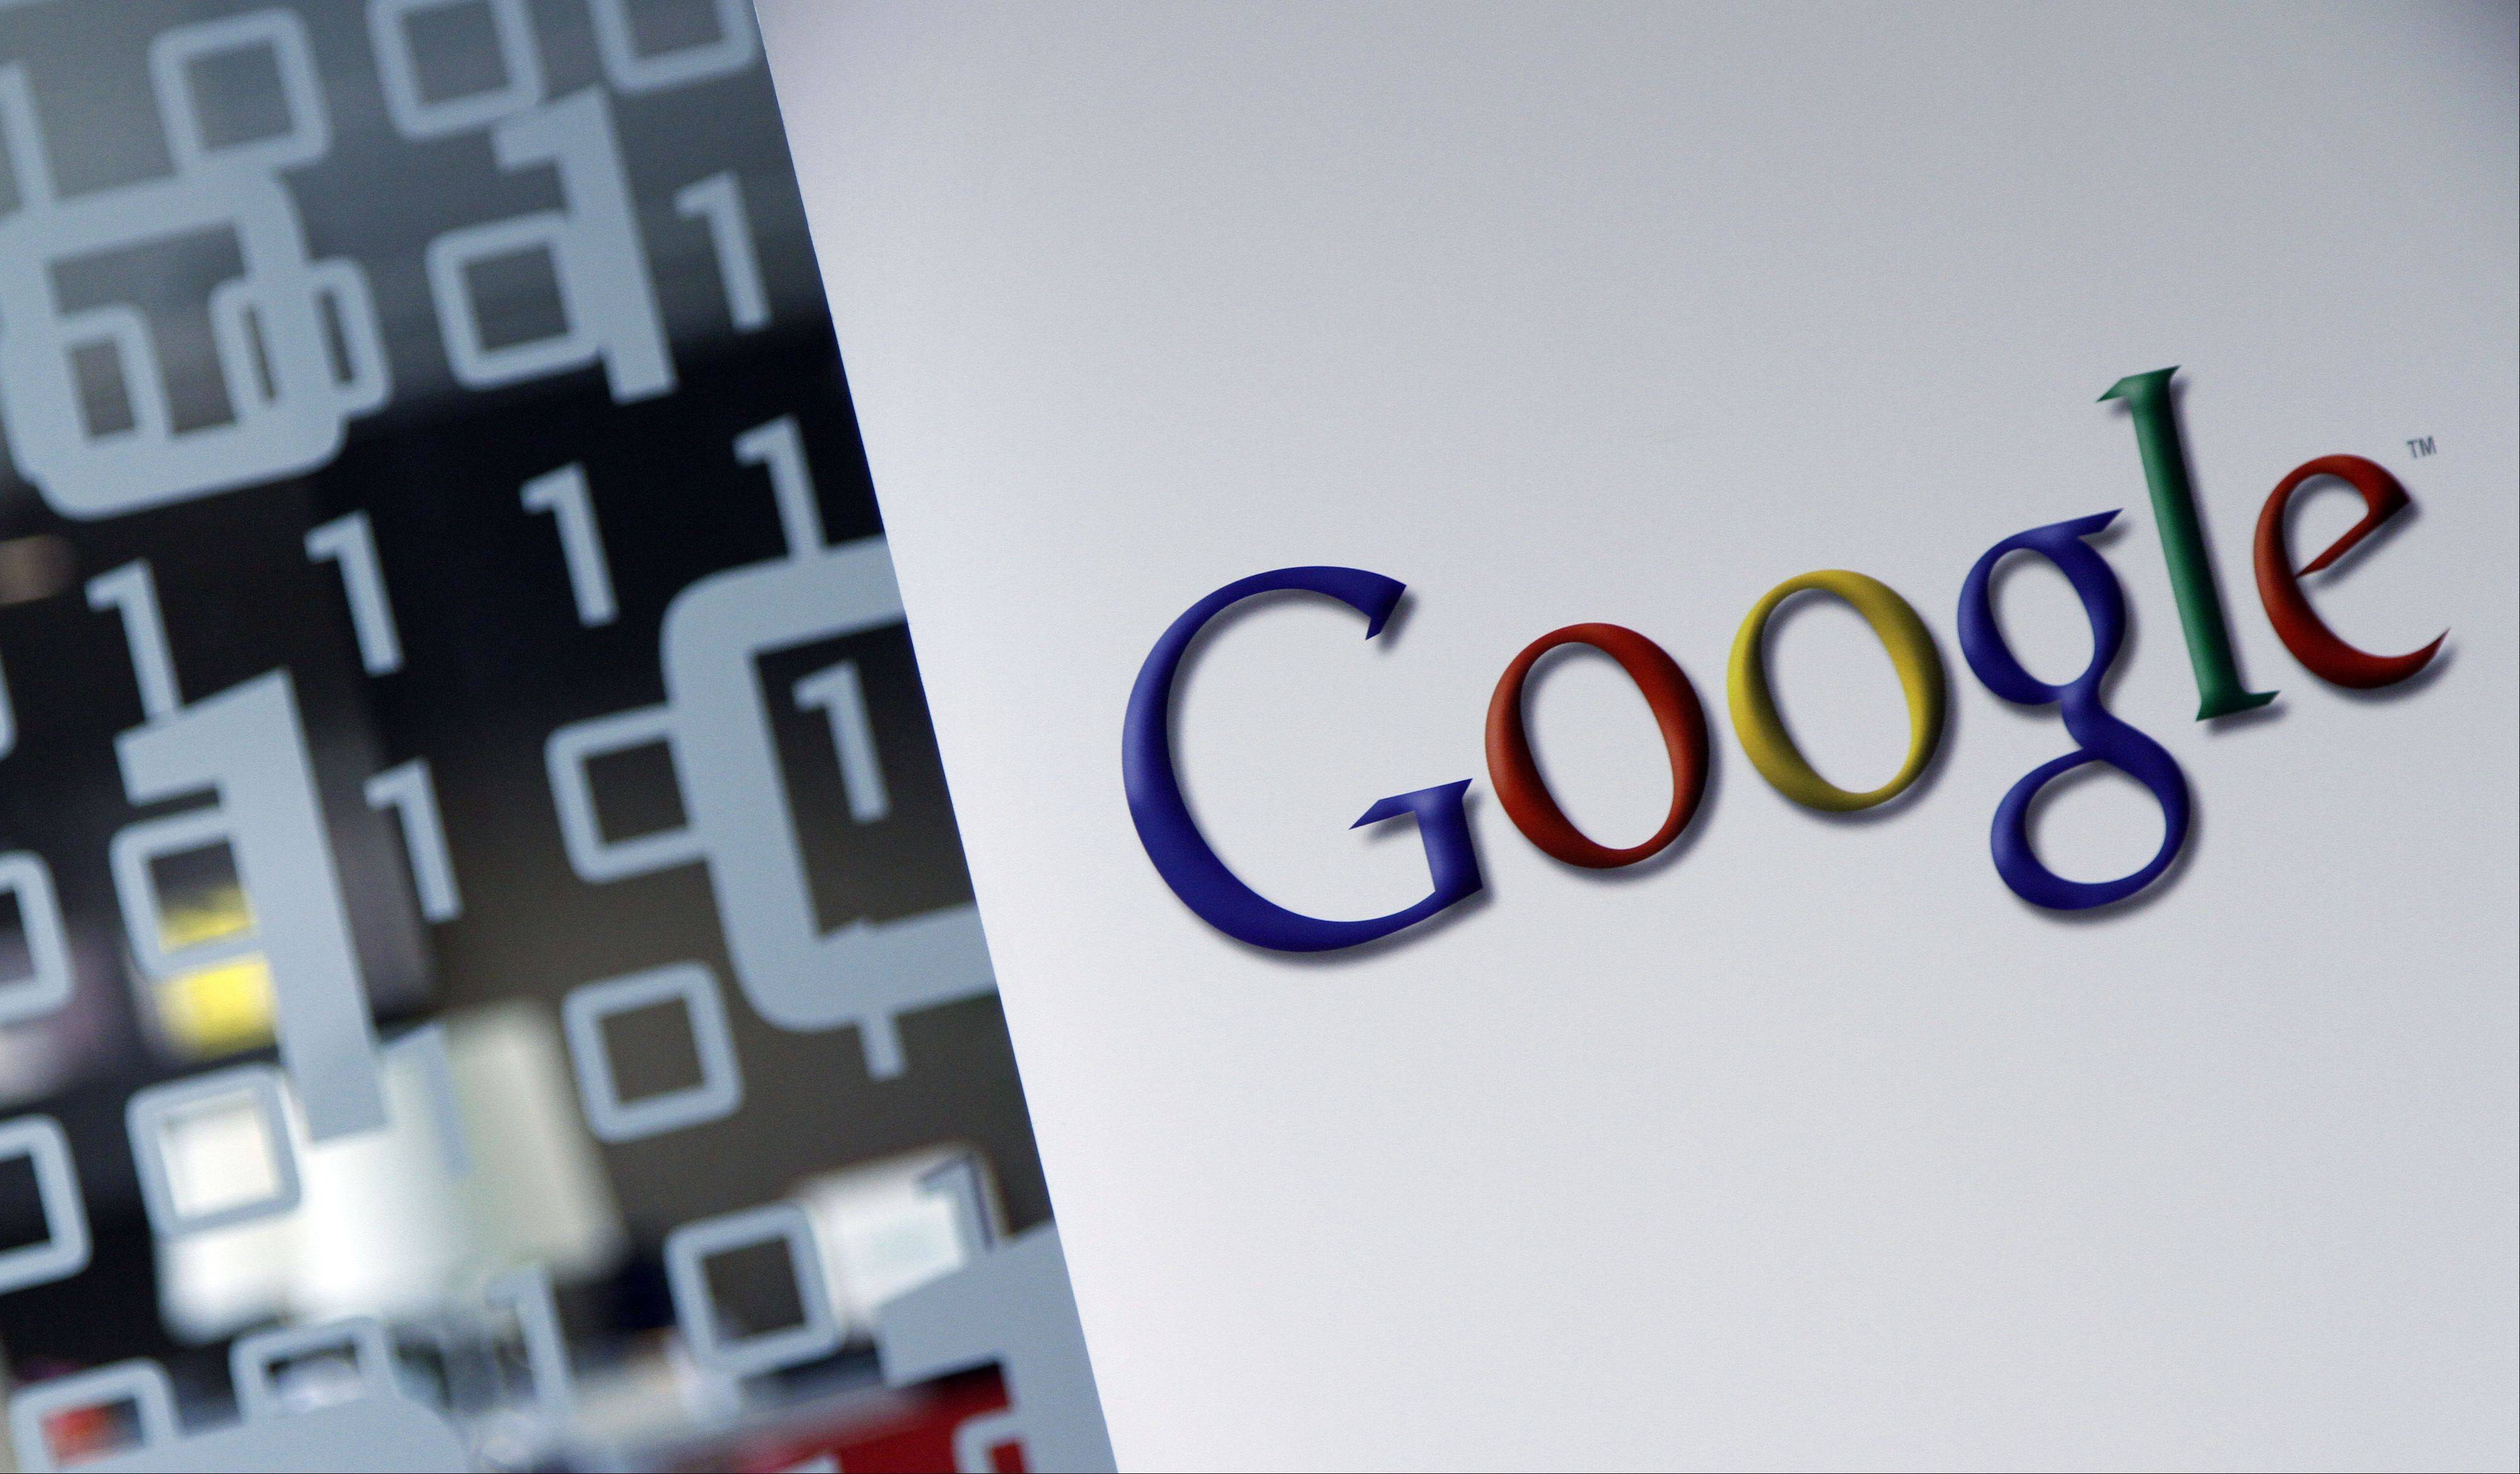 European regulators are asking Google to clarify its new privacy policy and make it easier for users to opt out of it.